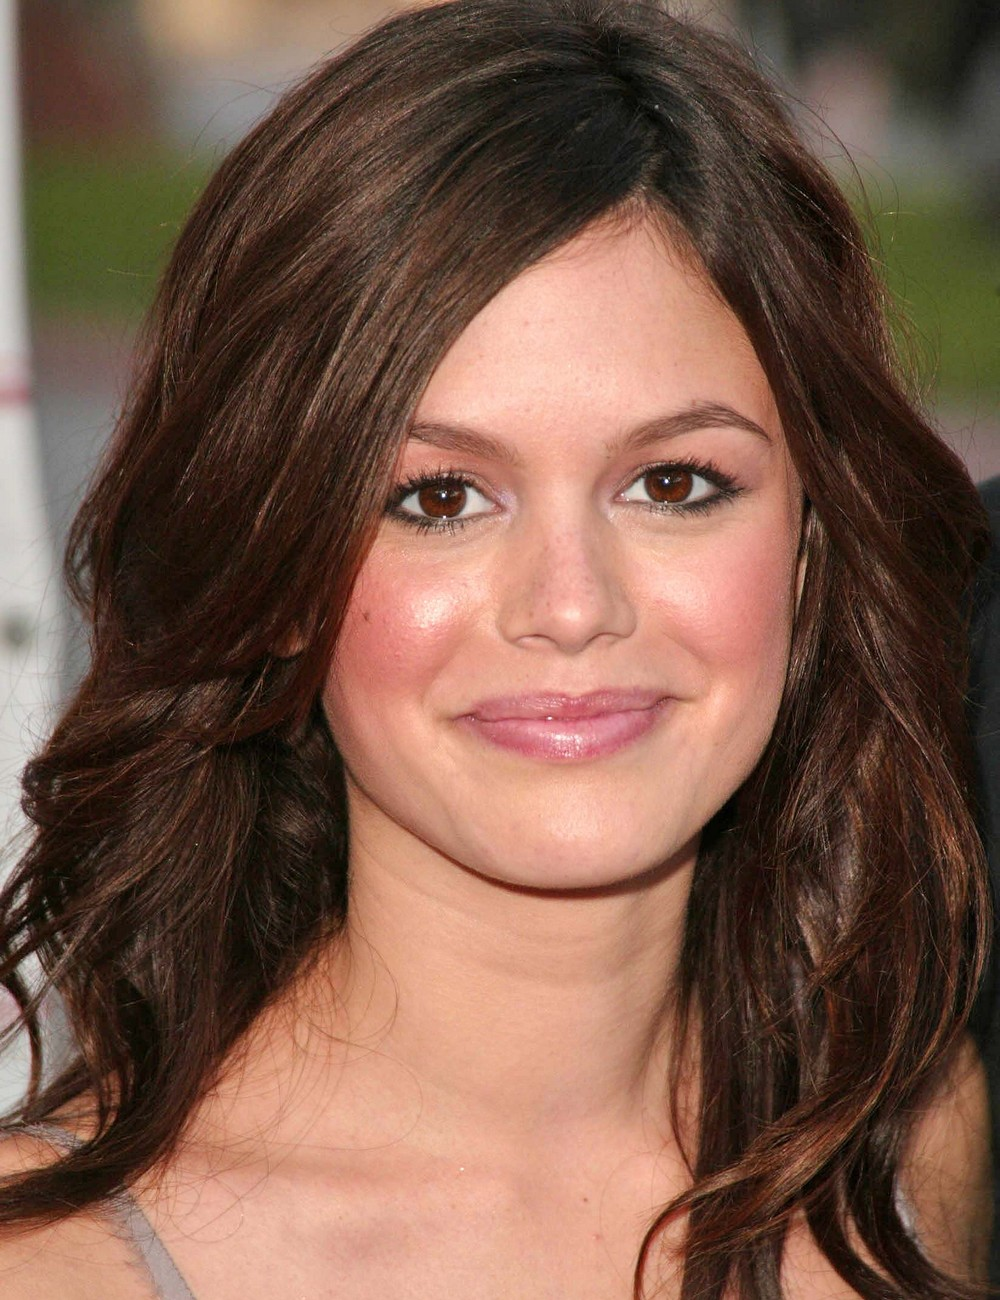 The Beauty Scoop!: Celeb Sunday - Rachel Bilson!